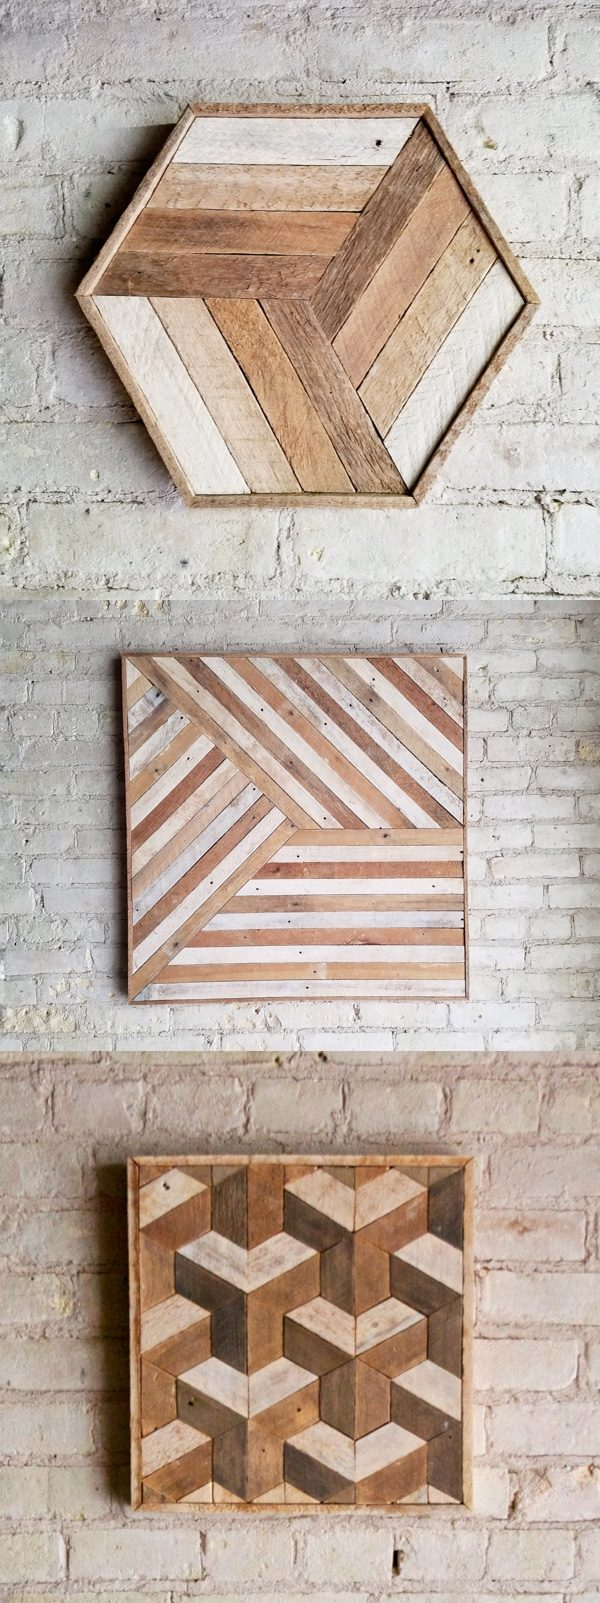 50 Wooden Wall Decor Art Finds To Help You Add Rustic Beauty